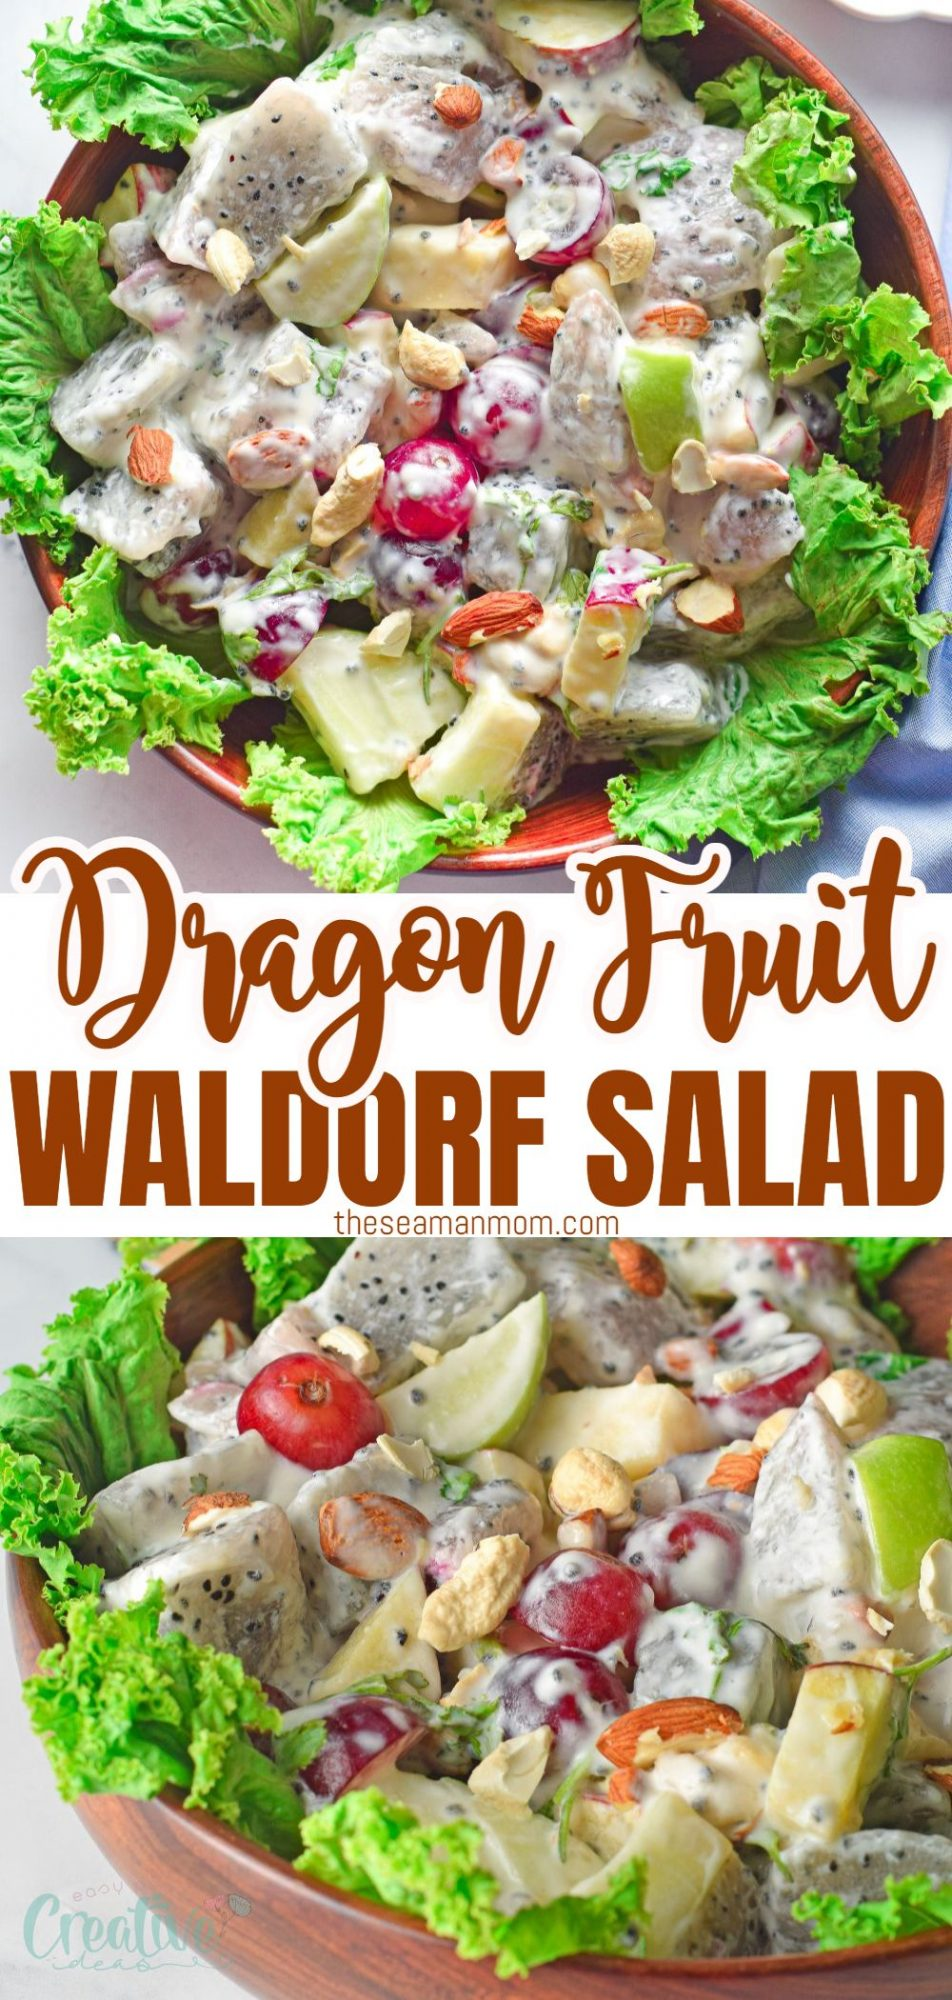 Photo collage of Waldorf salad recipe, on a lettuce bed in a brown bowl